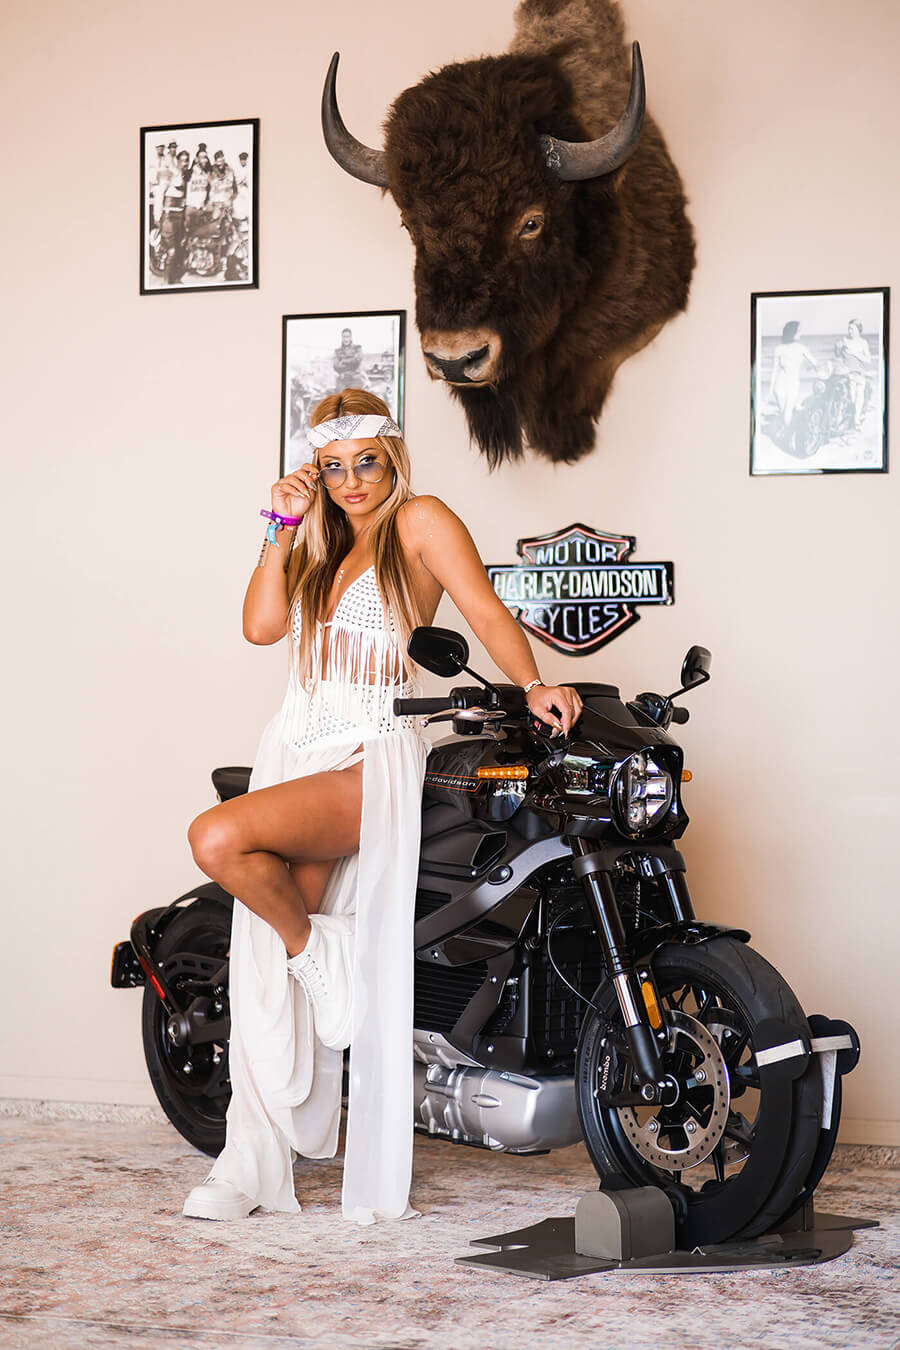 Influencers posed for the photo booth with Harley's new ride, the Livewire, garnering exposure through over 250 social posts and 33M impressions.